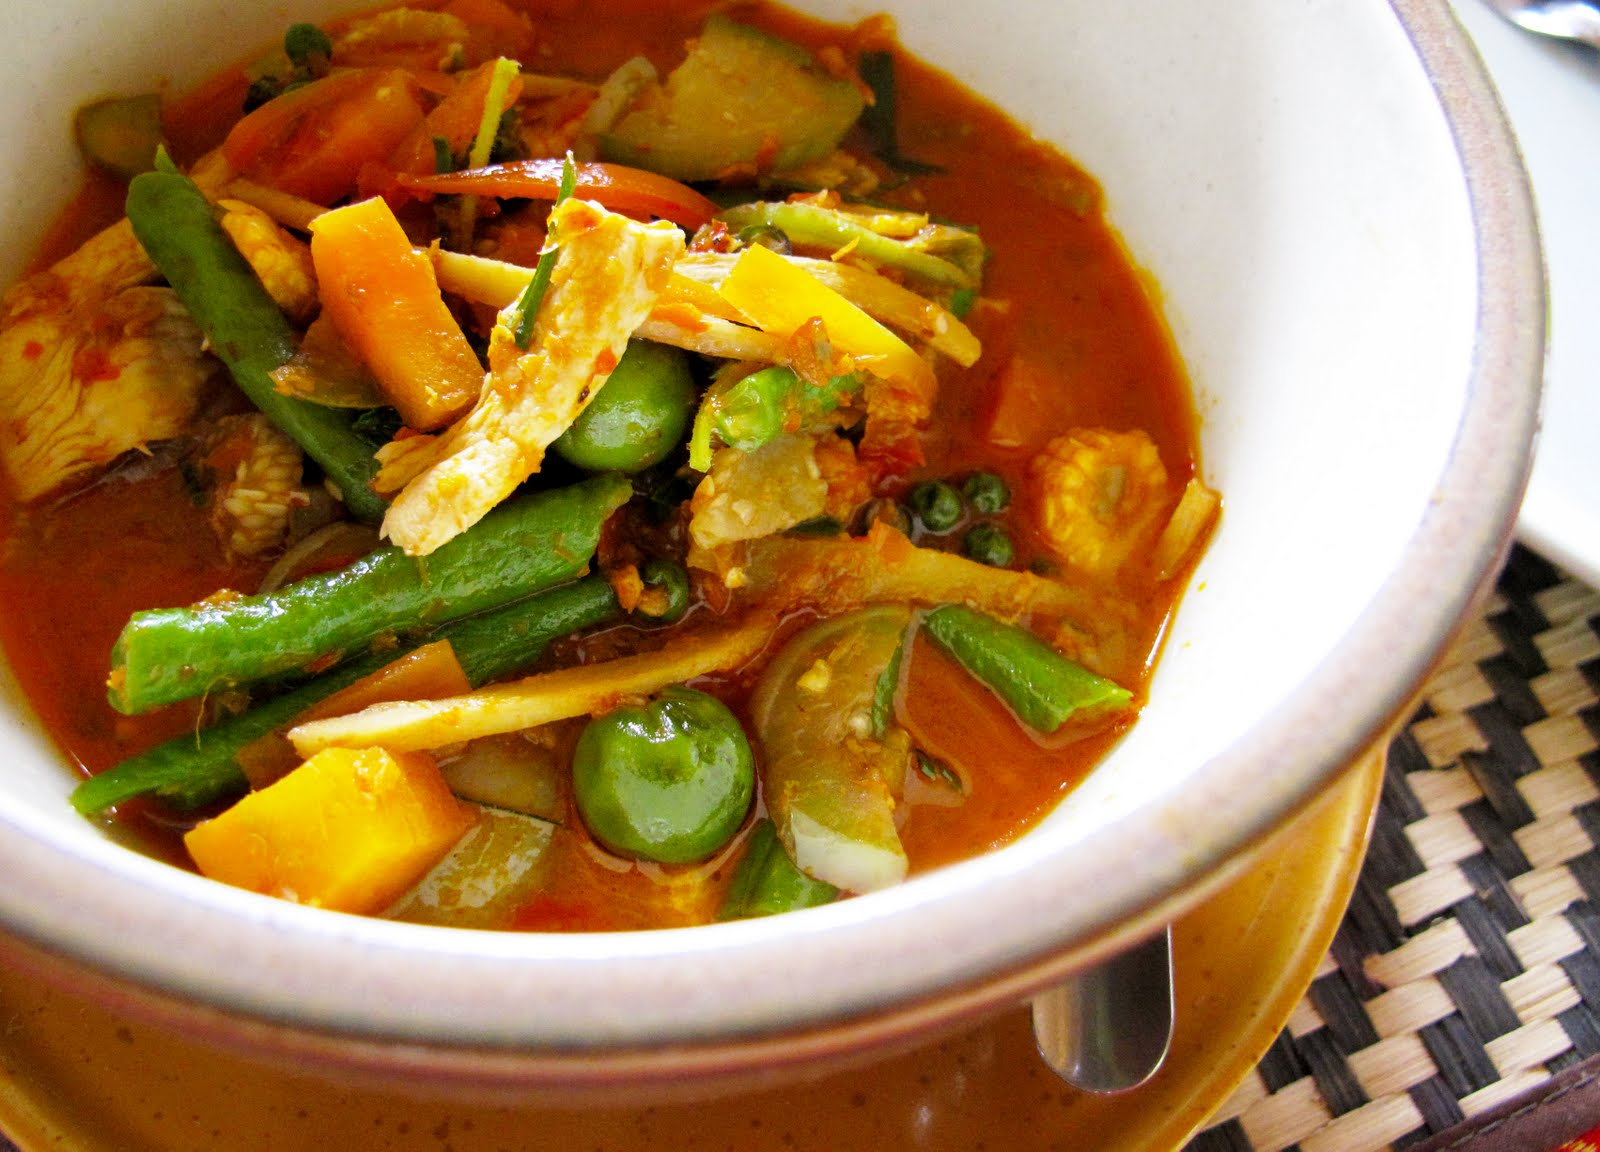 ... cook!: The Ultimate Guide to Thai Curries, and I-dare-you Jungle Curry